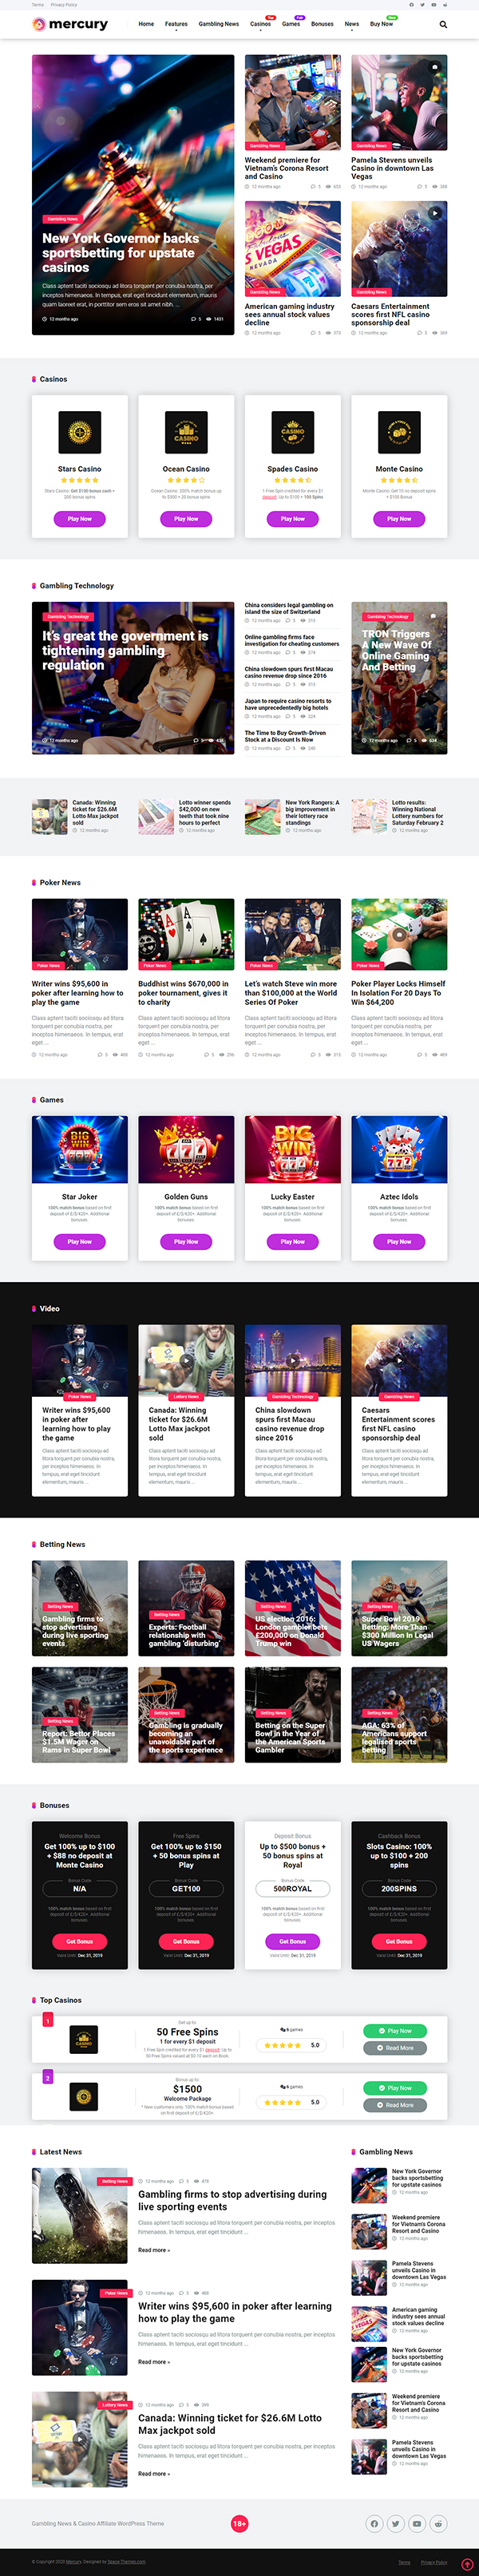 Mercury - Gambling & Casino Affiliate WordPress Theme